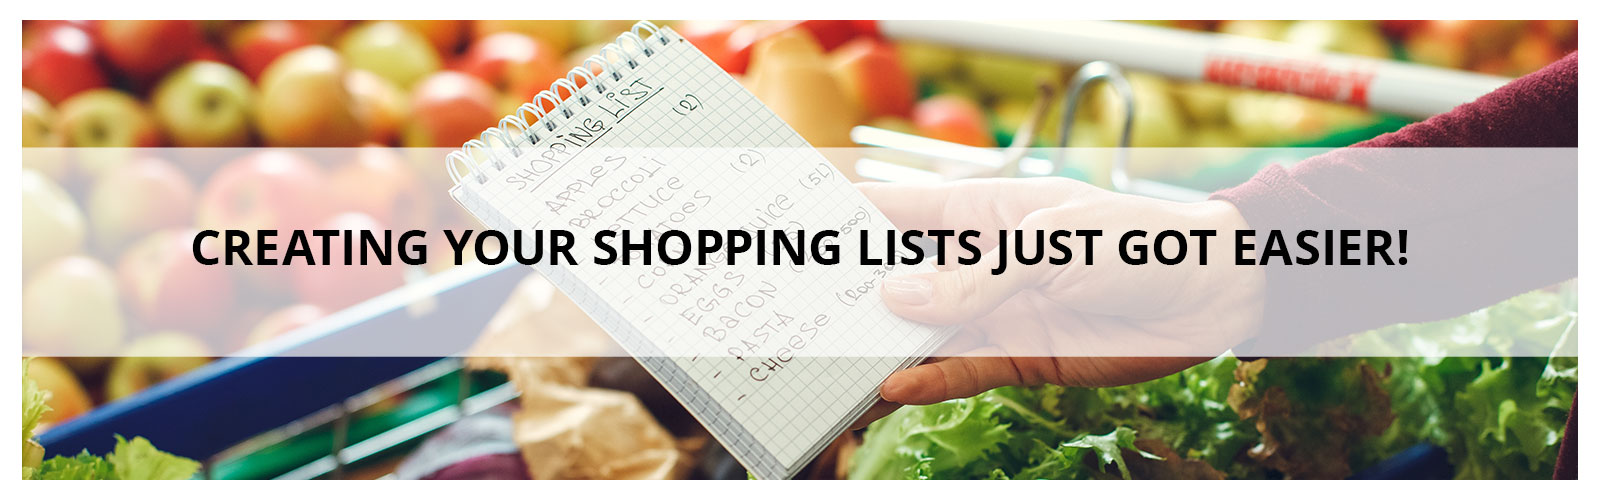 Shopping-List_Simple-Banner-Component_2.jpg